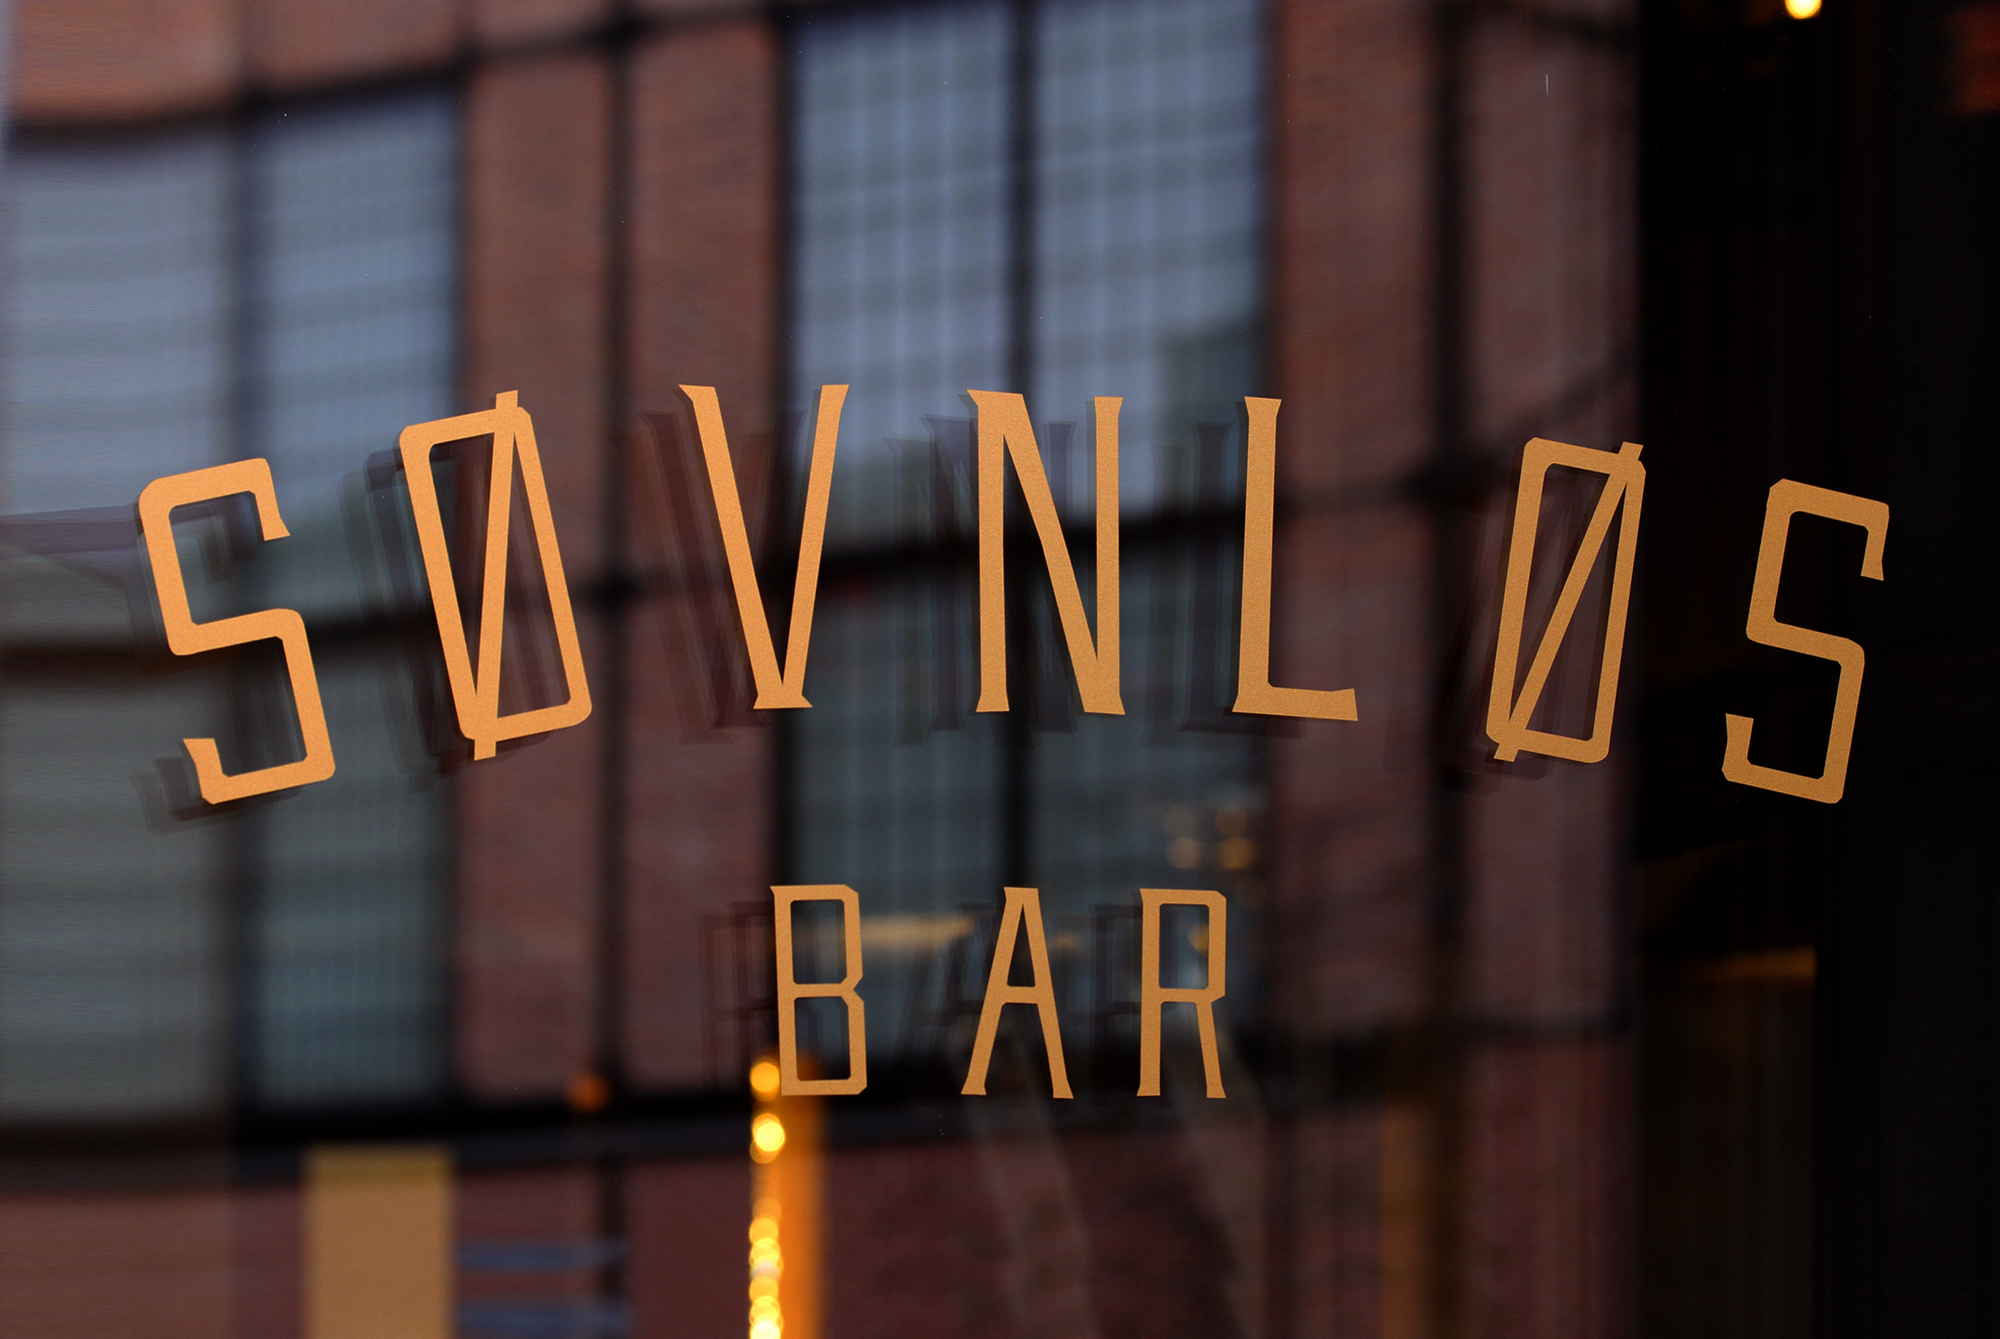 Søvnløs Bar - window logo